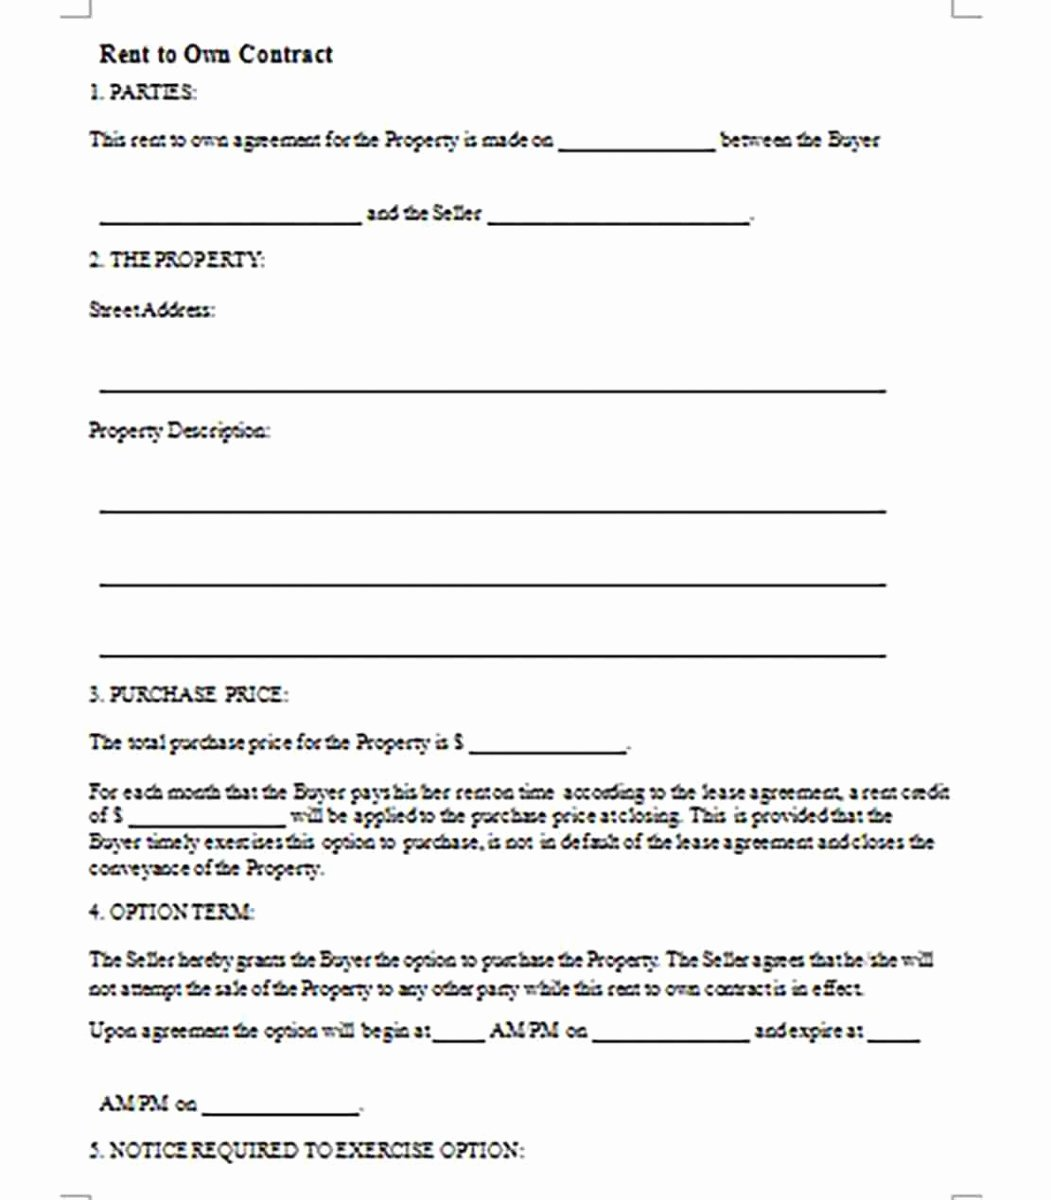 Rent to Own Contracts Templates New Rent to Own Contract Templates – Quick Learning and Making